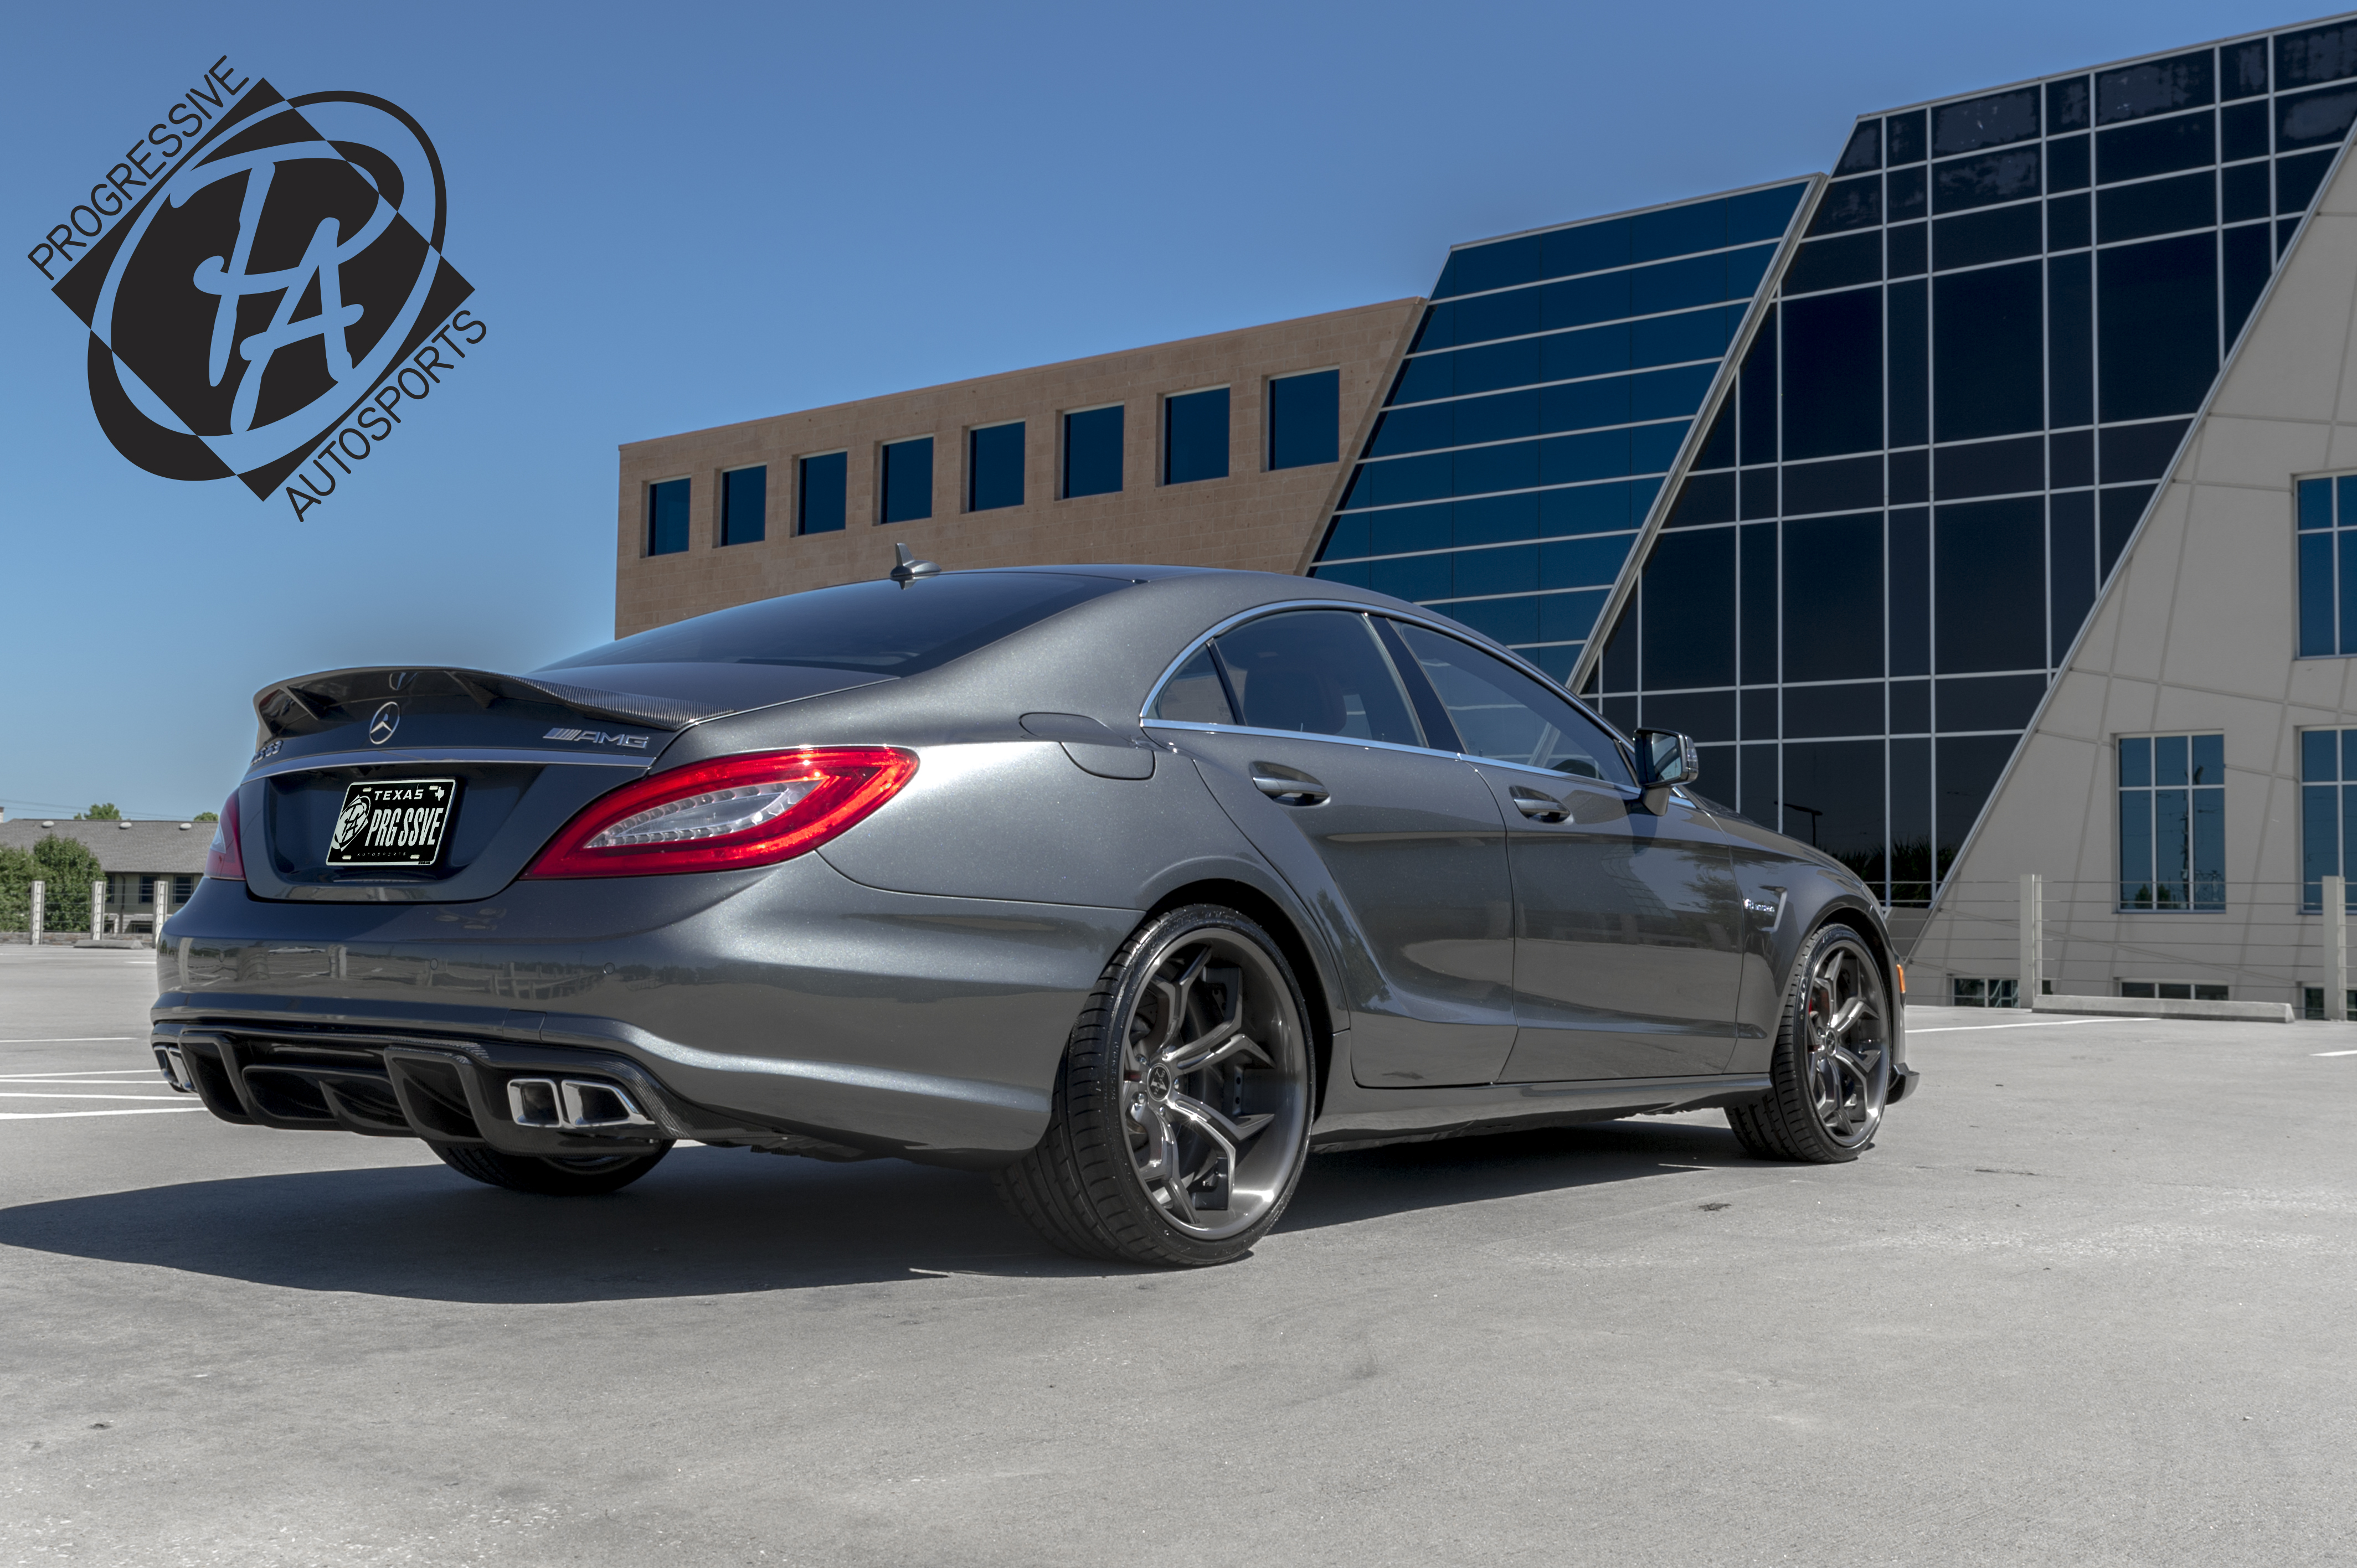 Bmw Of Houston >> 2012 MERCEDES AMG CLS63 - CUSTOM WIDE BODY PROJEKT - Progressive Autosports